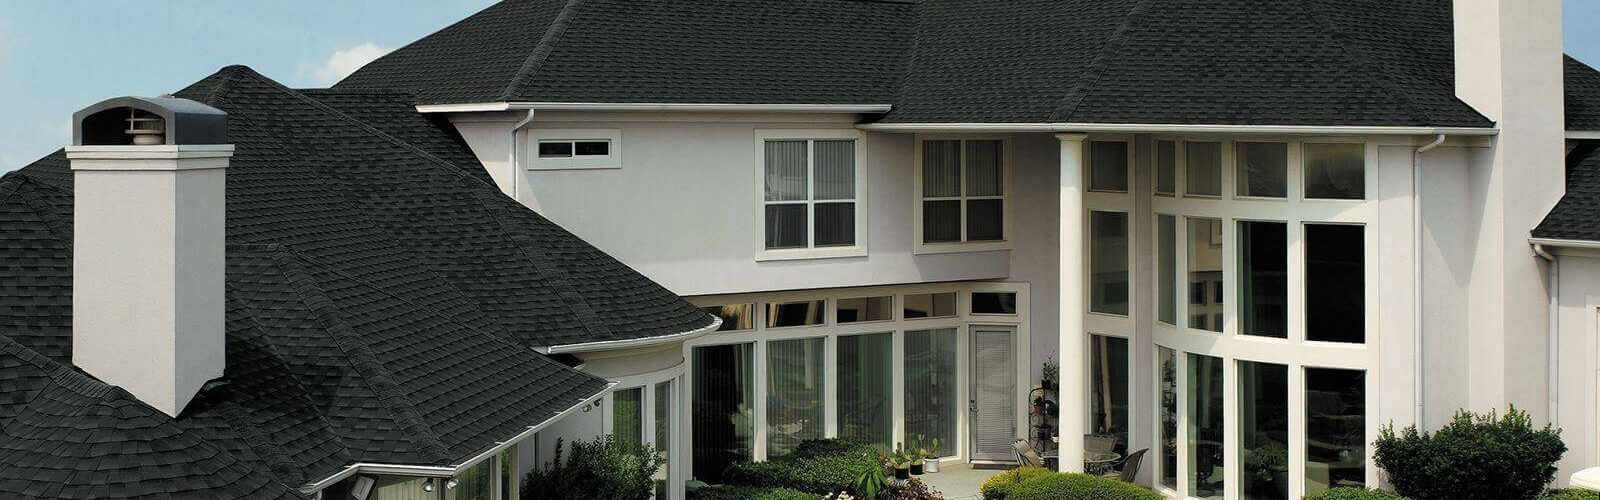 gaf hd charcoal color roofing